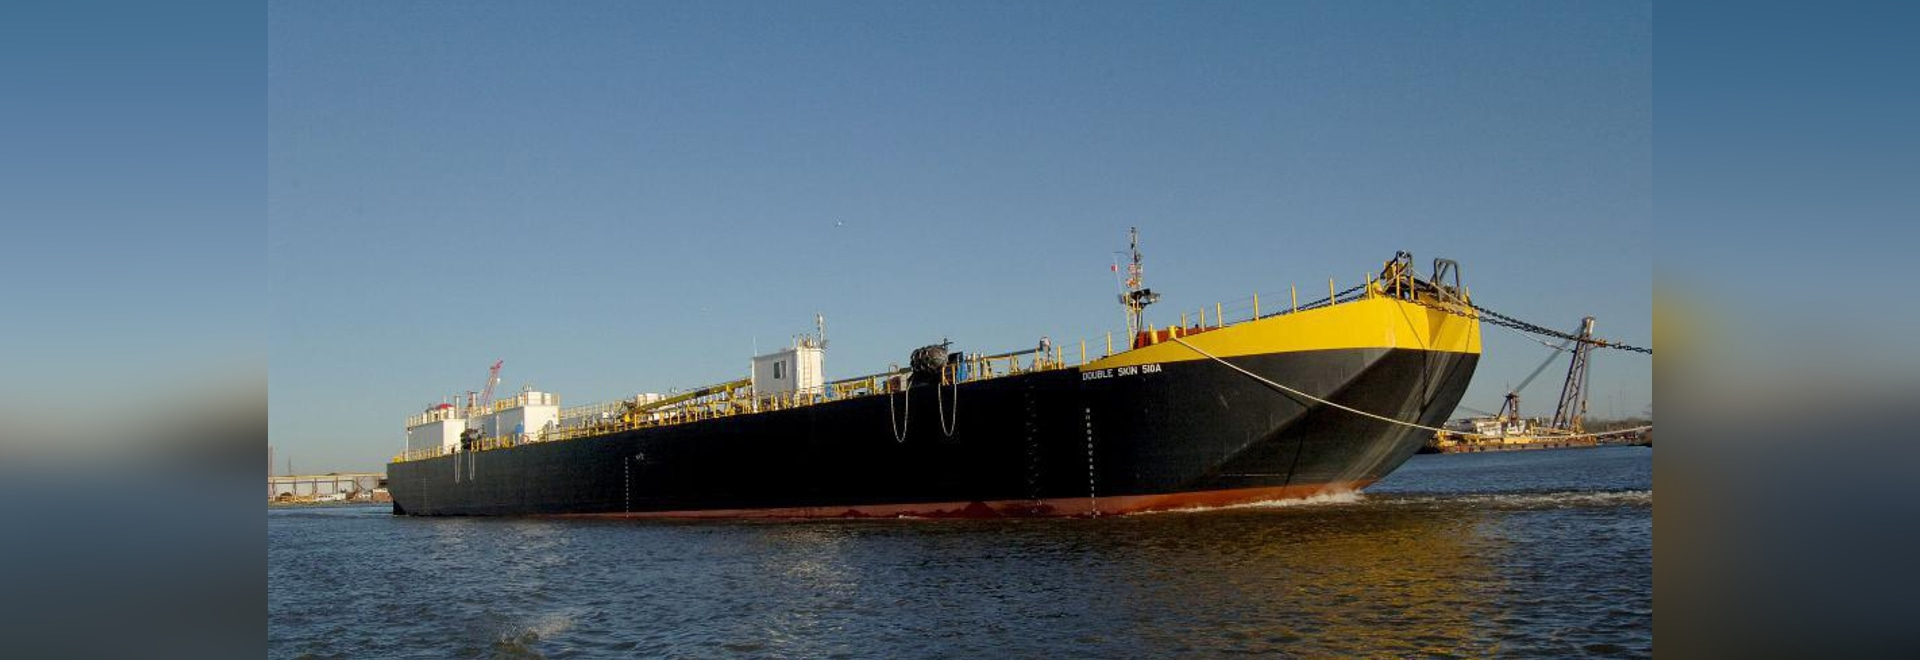 "New 361'x62'x24'6"" asphalt barge was christened back in January. Conrad Shipyard photo"